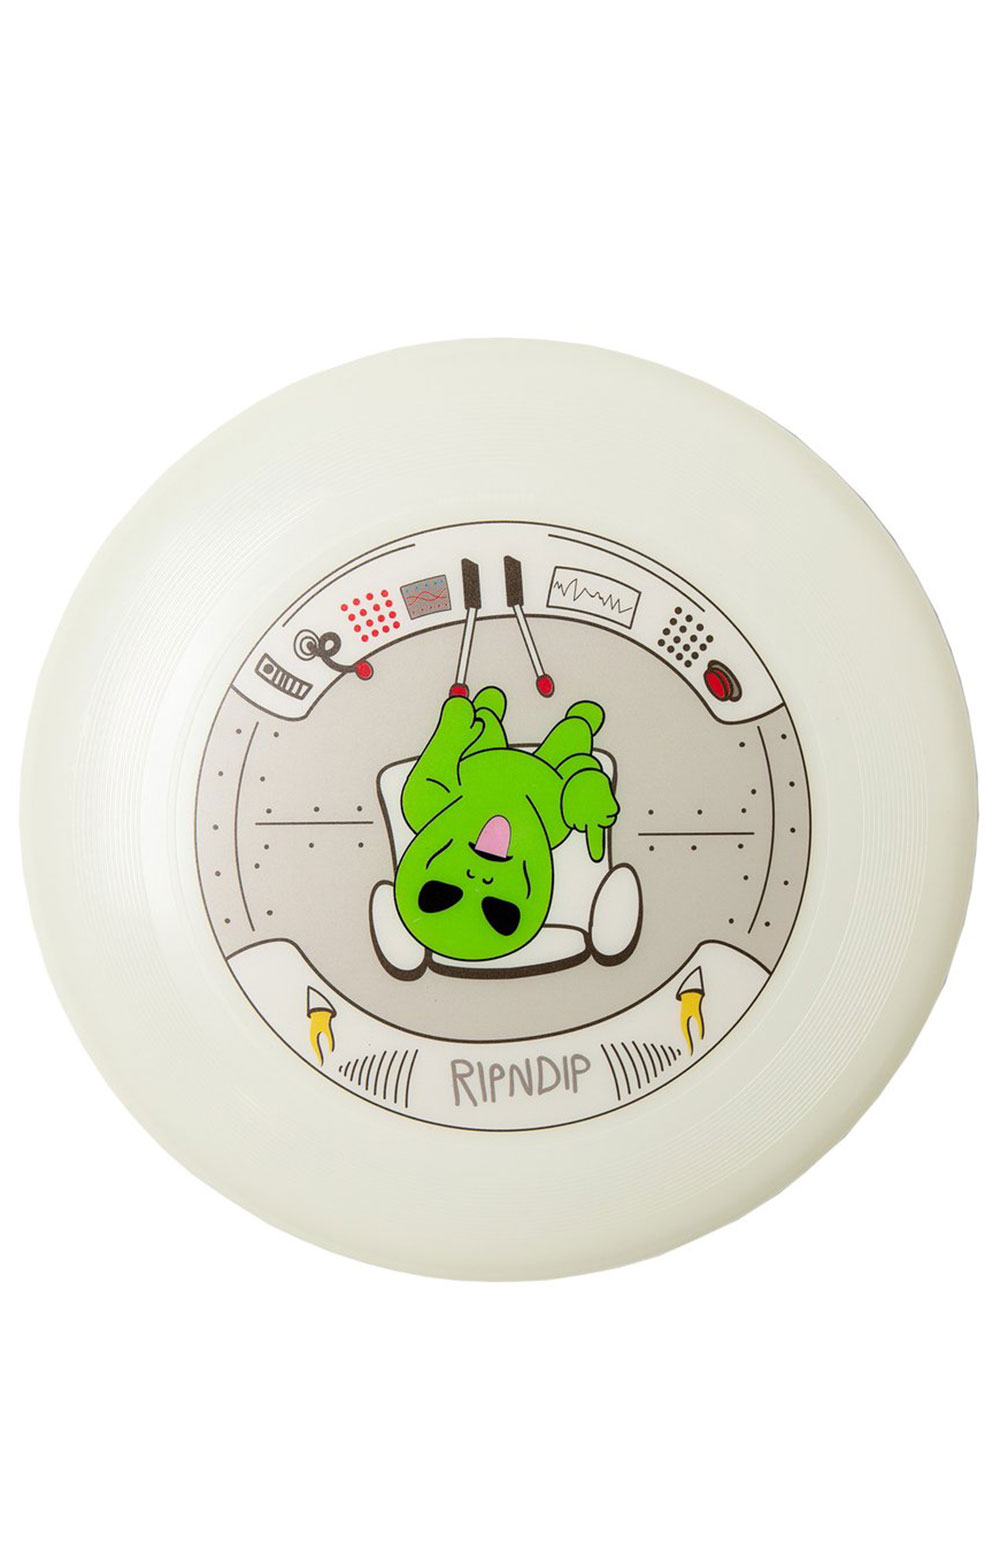 Phone This Glow In The Dark Saucer